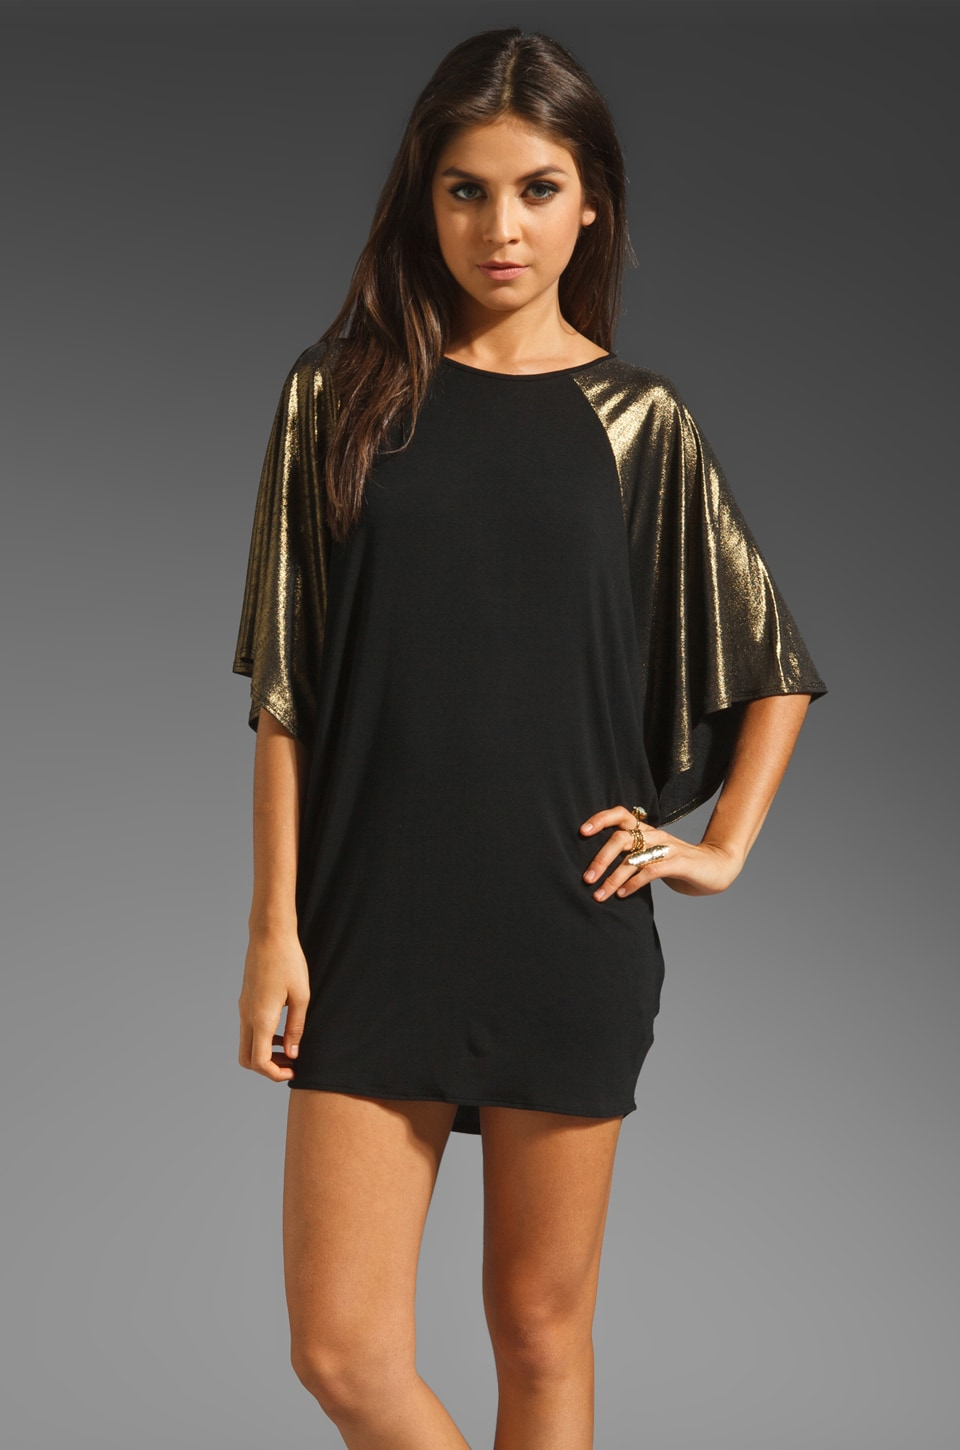 Riller & Fount Issac Short Sleeve Raglan Tunic in Bronze Metallic